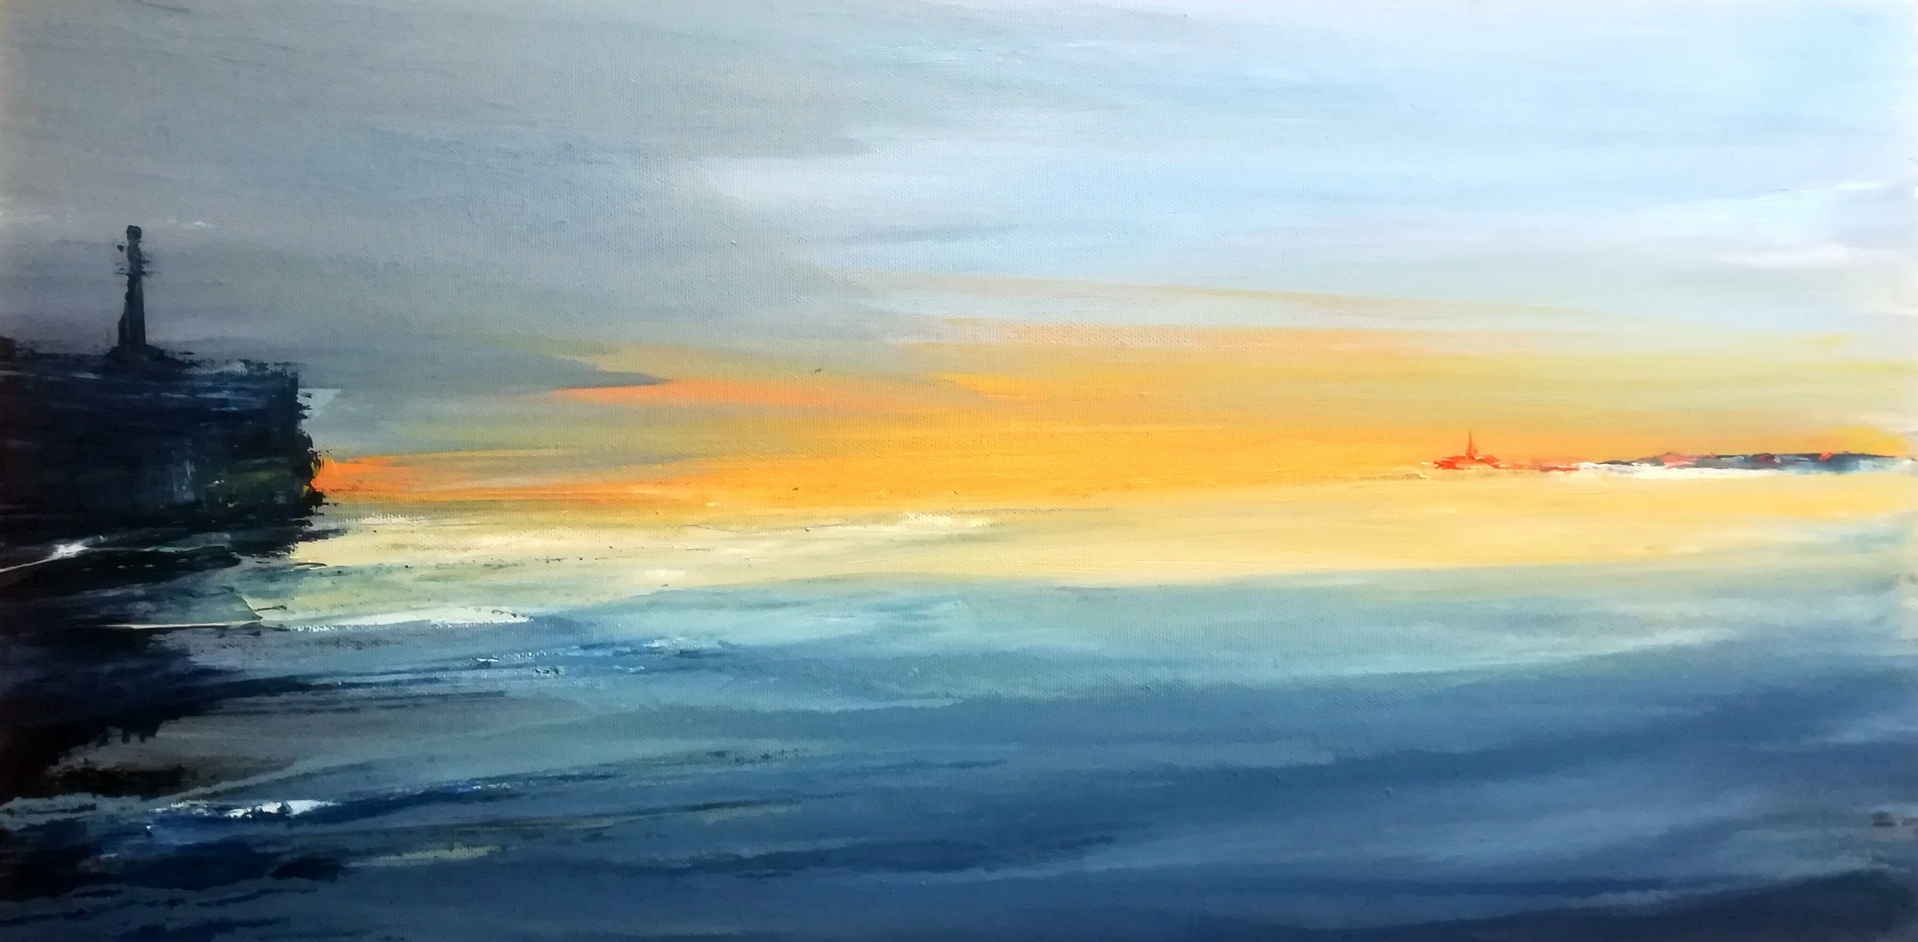 Francesco-Zavatta-2018 Tramonto sul porto 30x60cm oil on canvas